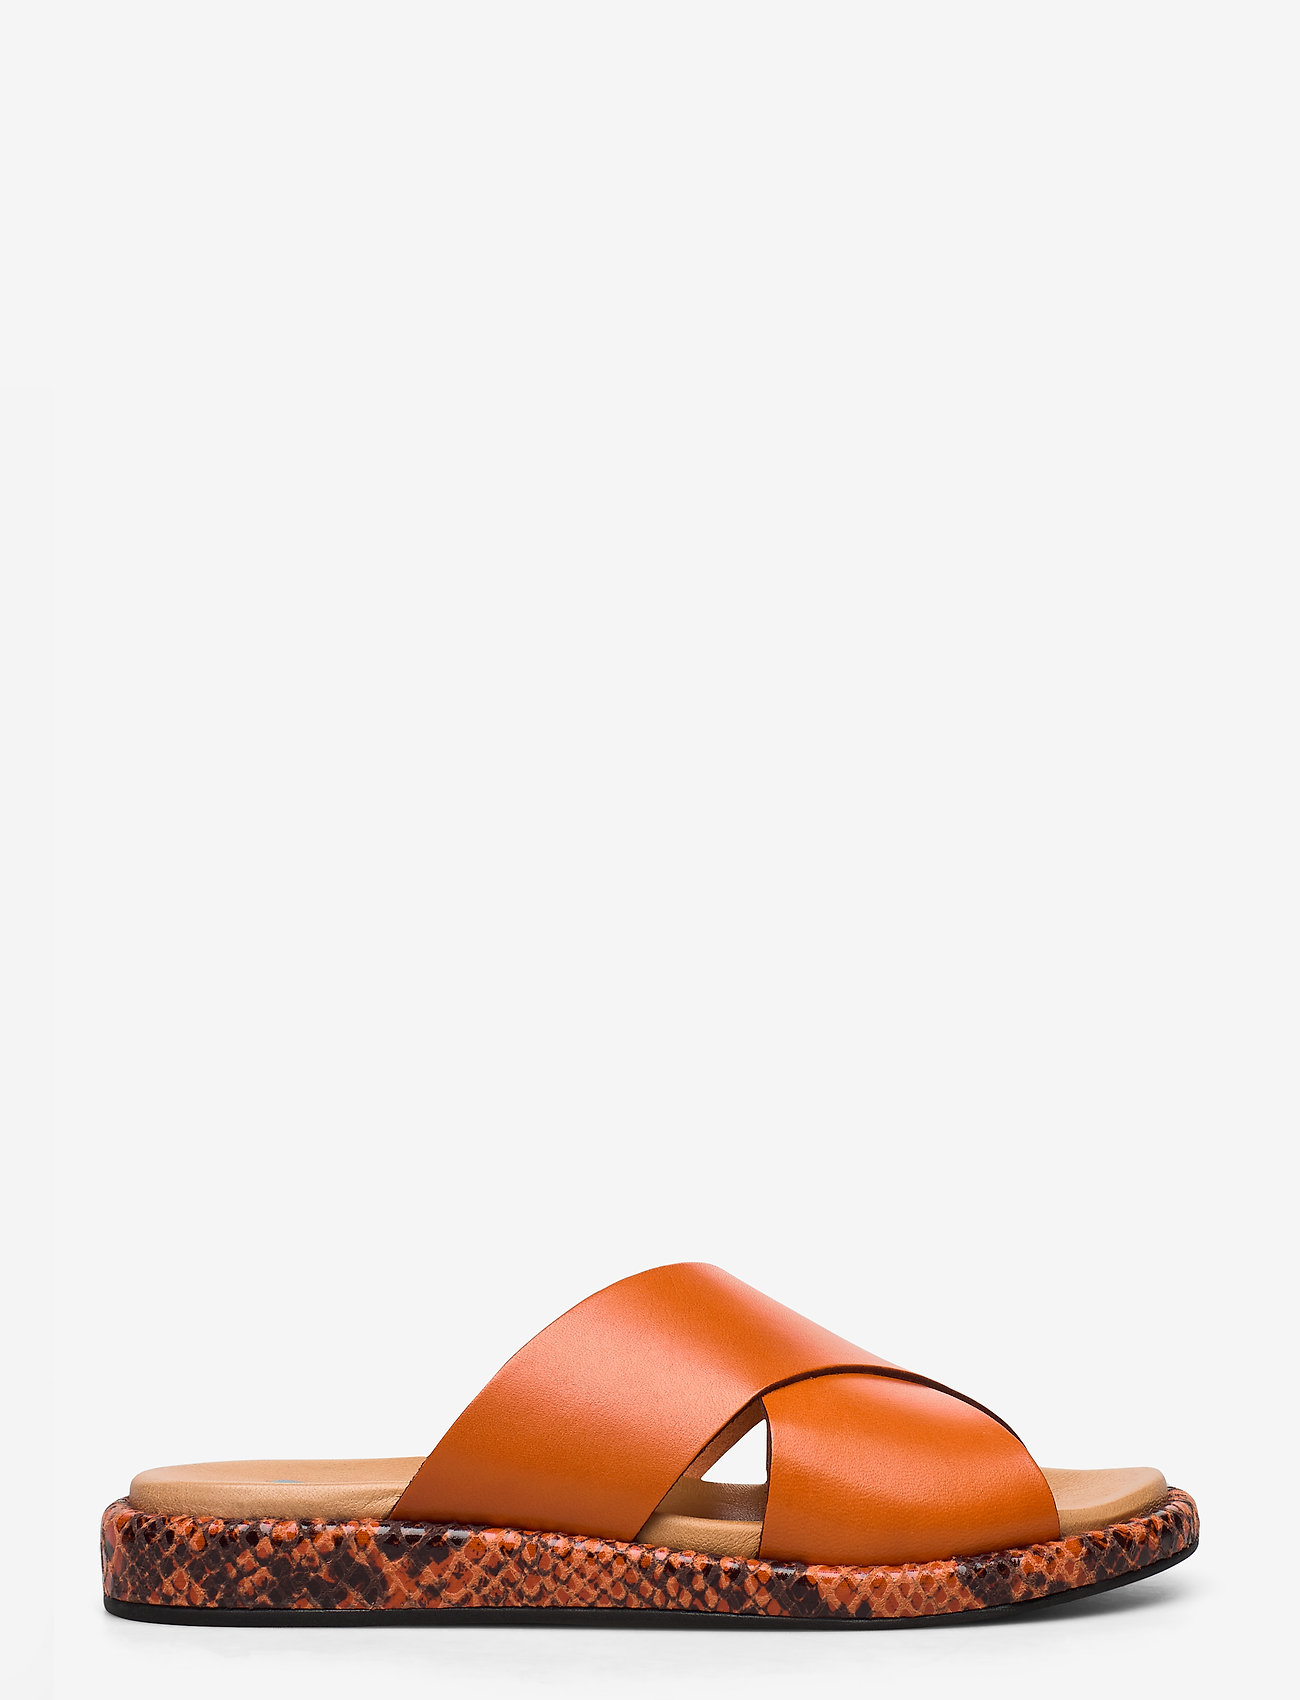 Plateau Cross Mix (Arancio) (84.50 €) - Apair KEouL